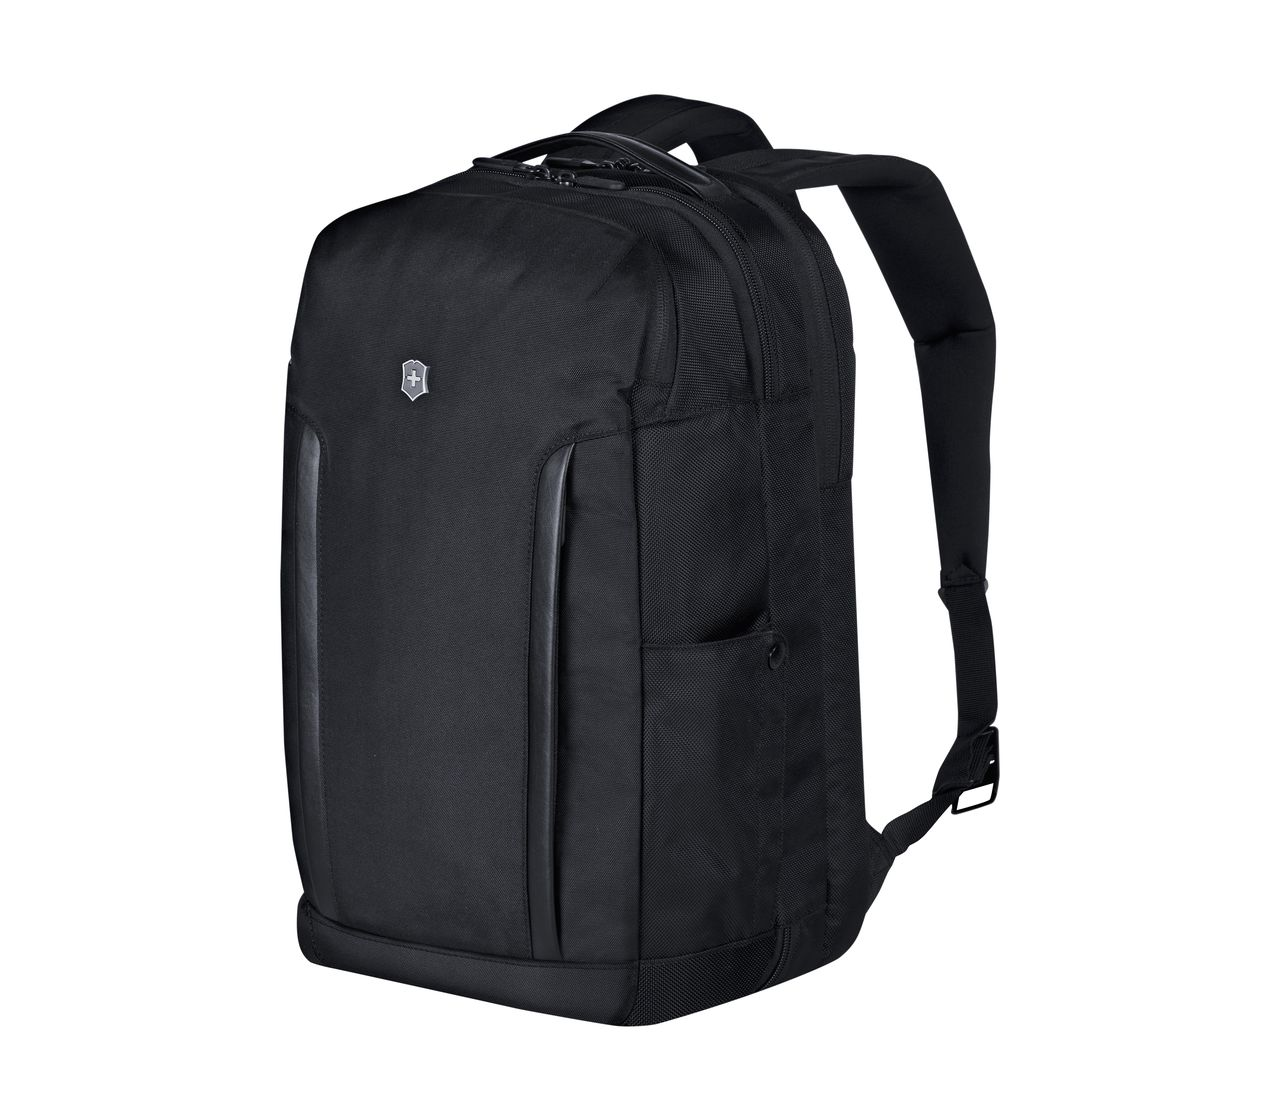 Victorinox Deluxe Travel Laptop Backpack In Black 602155